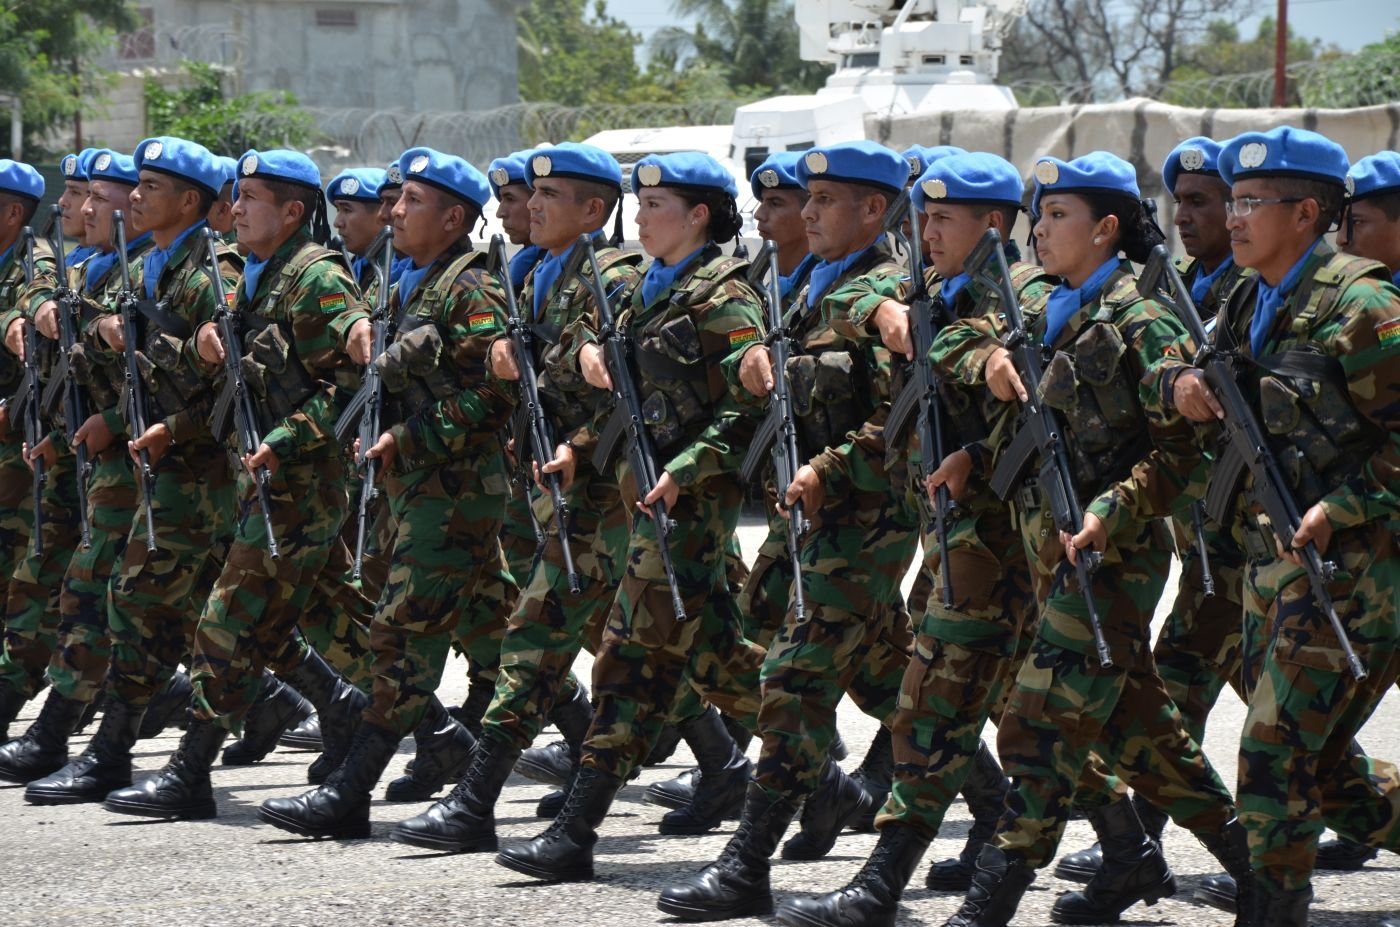 Bolivian Army Concludes United Nations Peace Mission in Haiti